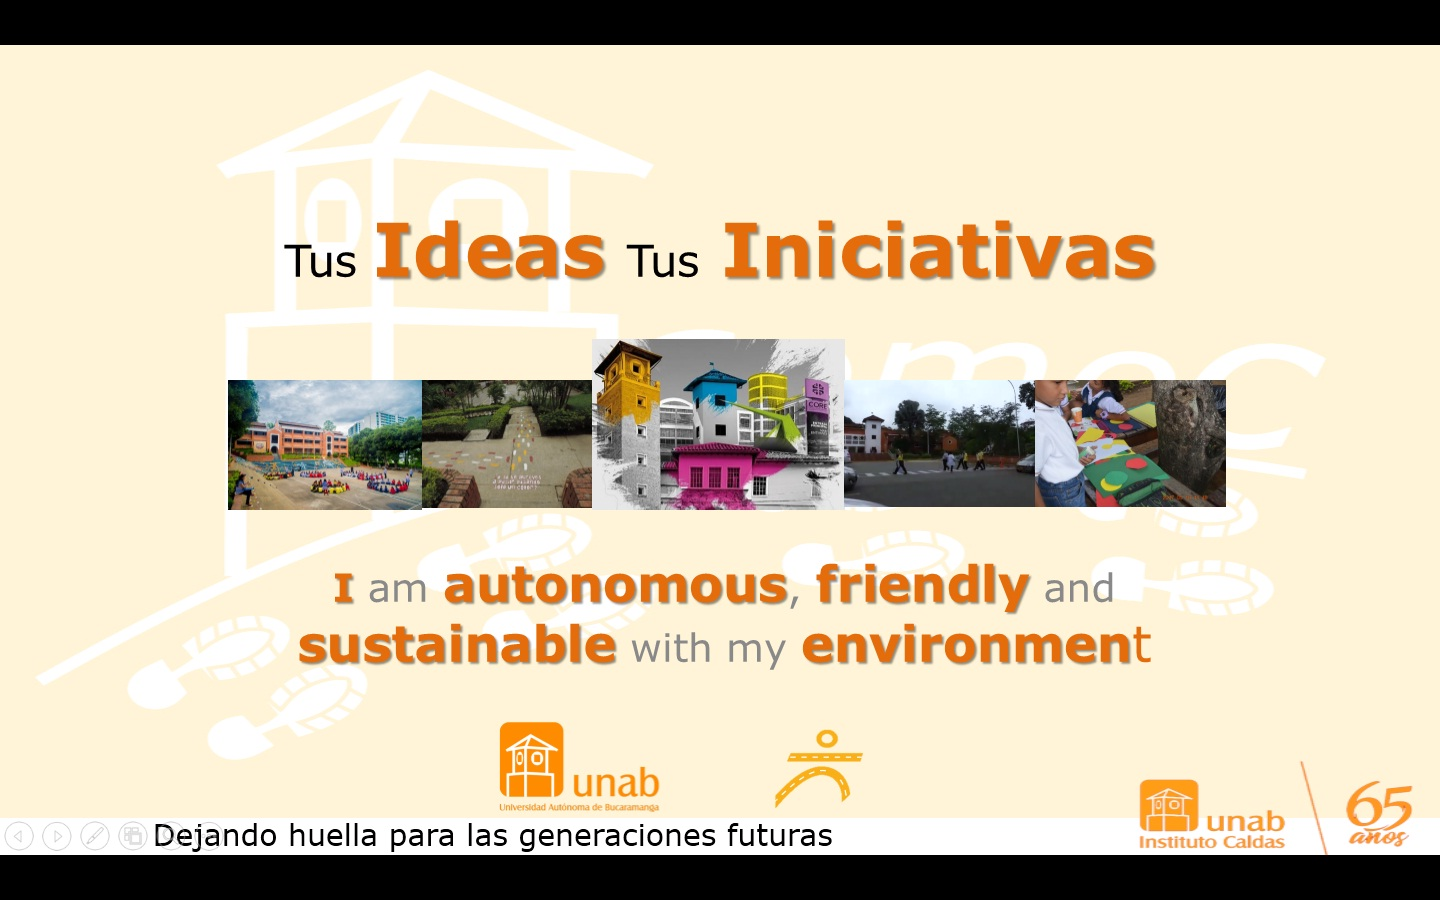 I am autonomous, friendly and sustainable with my environment